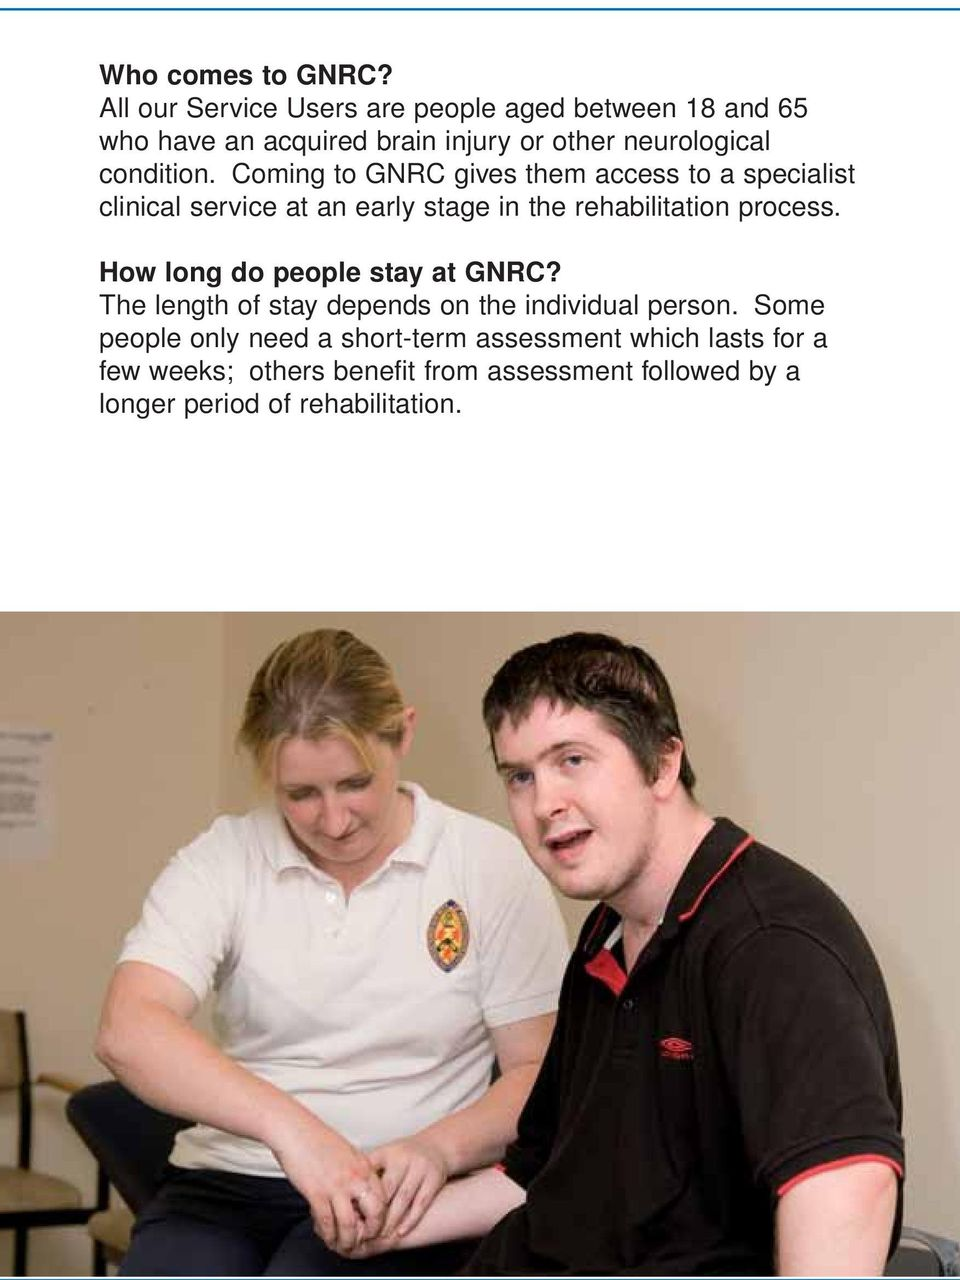 Coming to GNRC gives them access to a specialist clinical service at an early stage in the rehabilitation process.